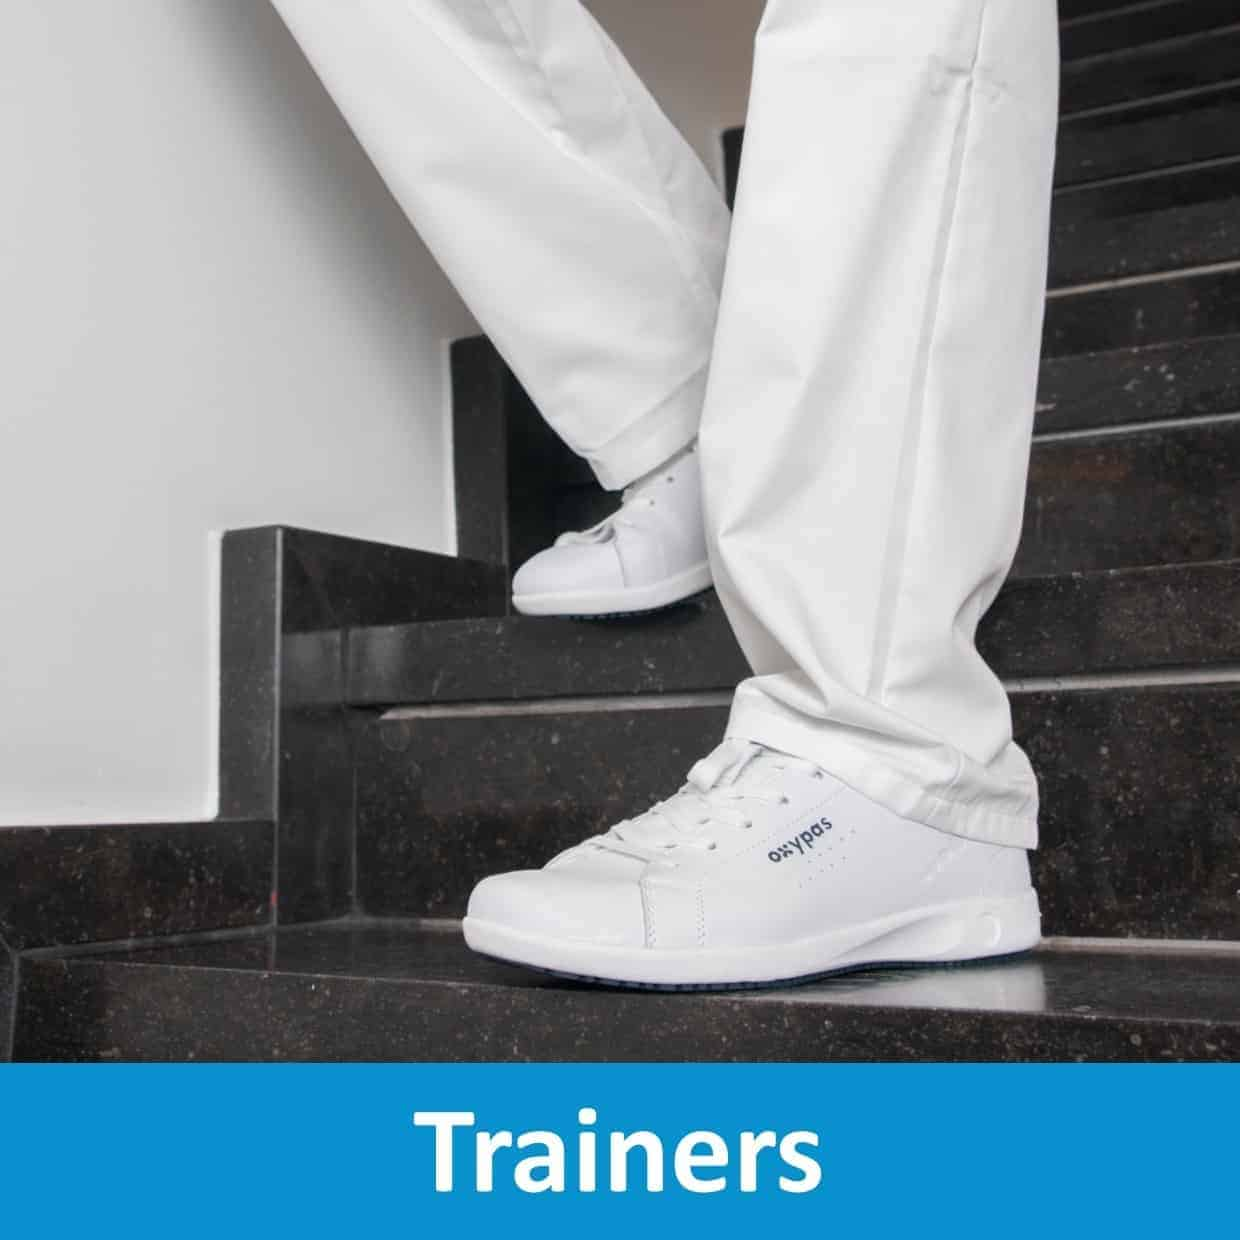 Trainer Style Shoes